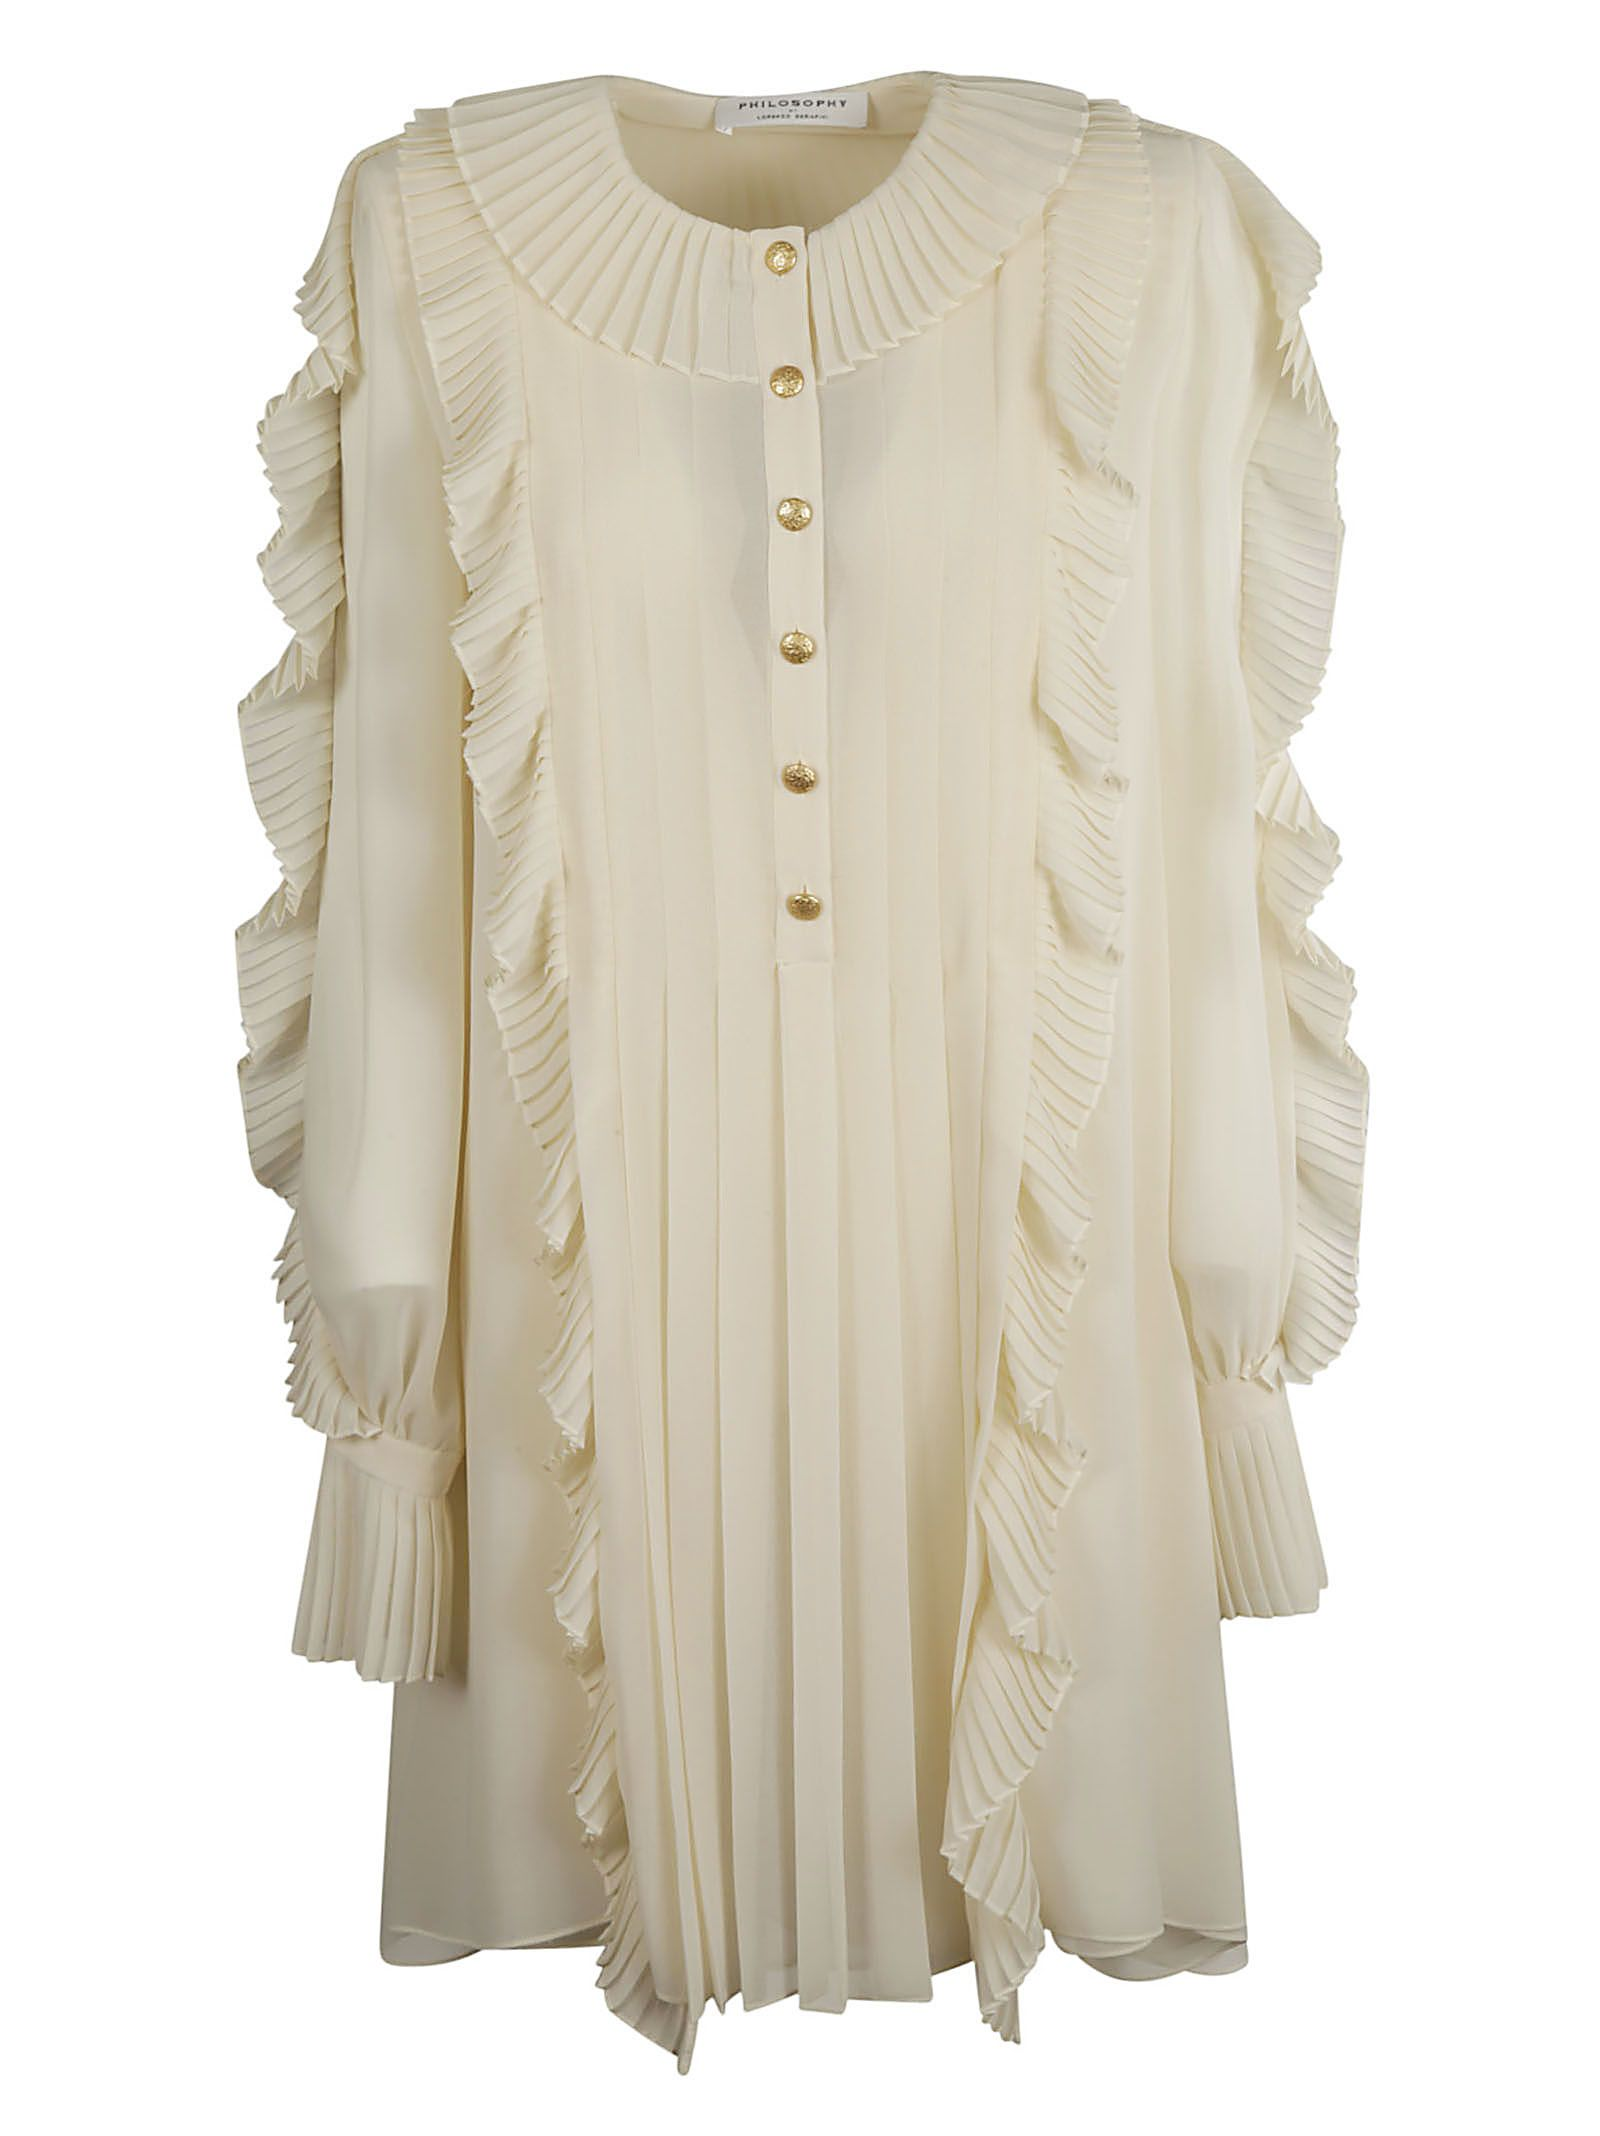 Philosophy Di Lorenzo Serafini Ruffled Dress